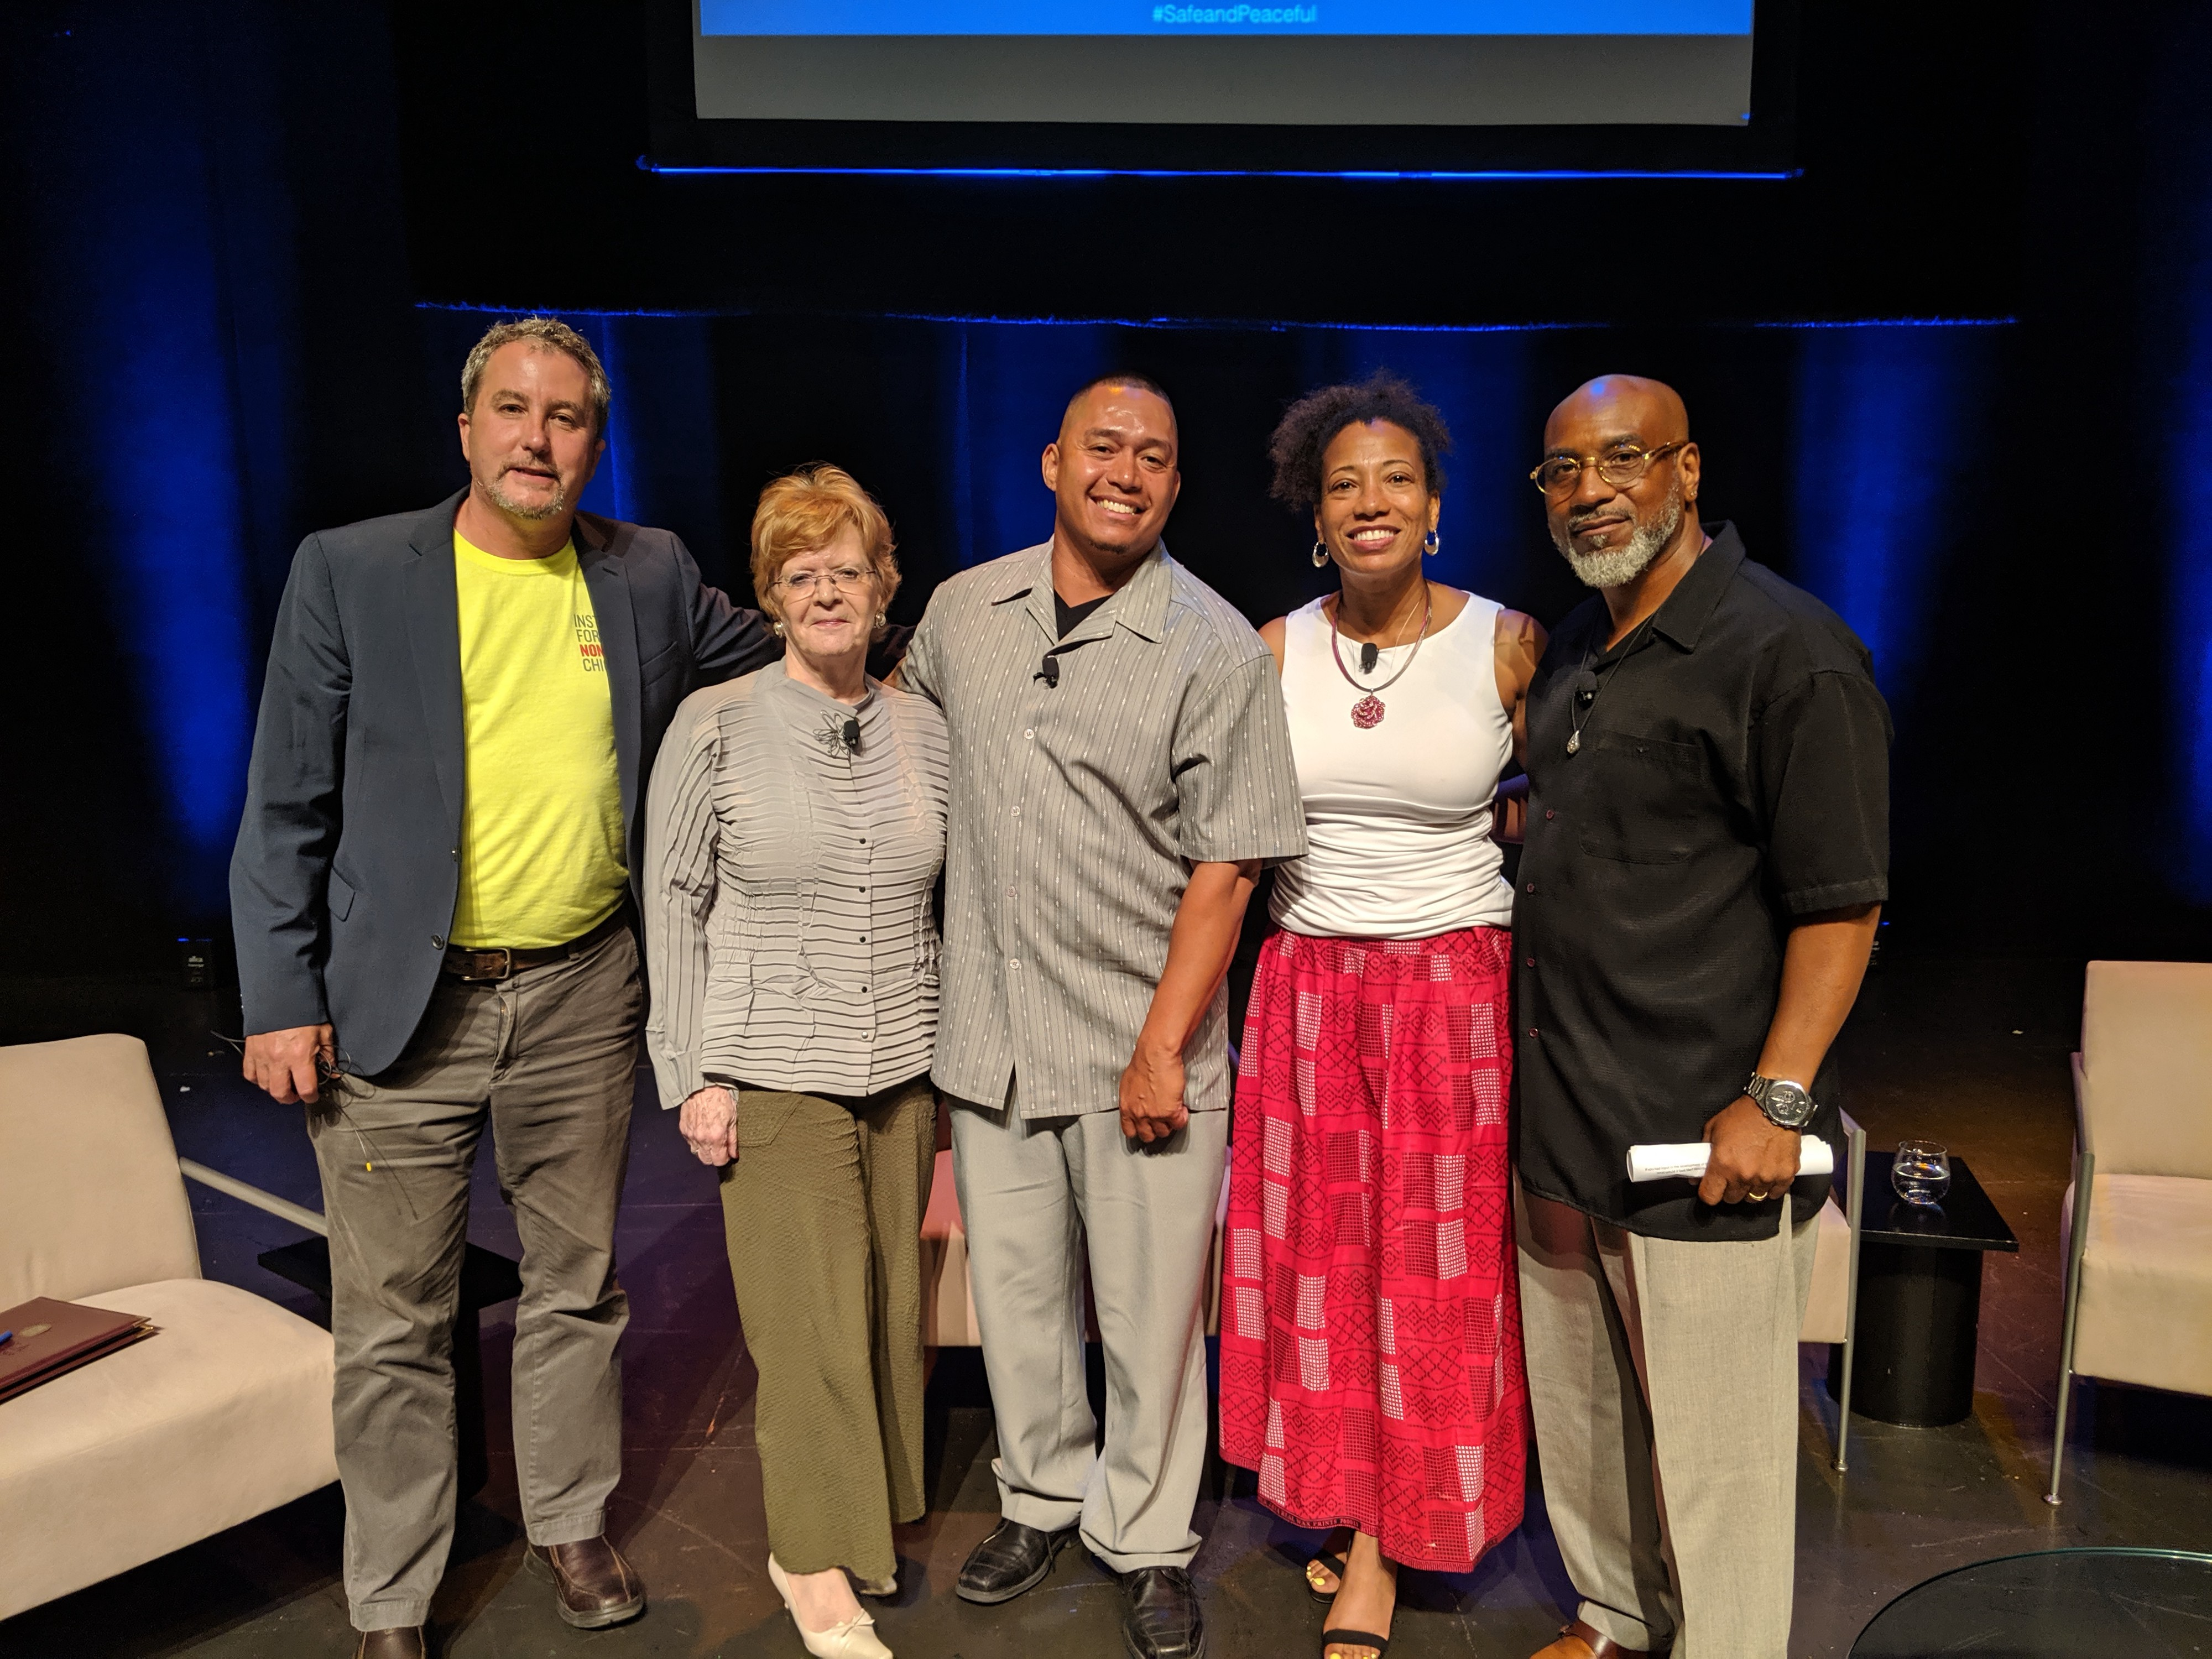 The panelists after the discussion. From left to right: Teny Gross, Julia Stasch, Jorge Matos, Tanya Woods, and Billy Moore.